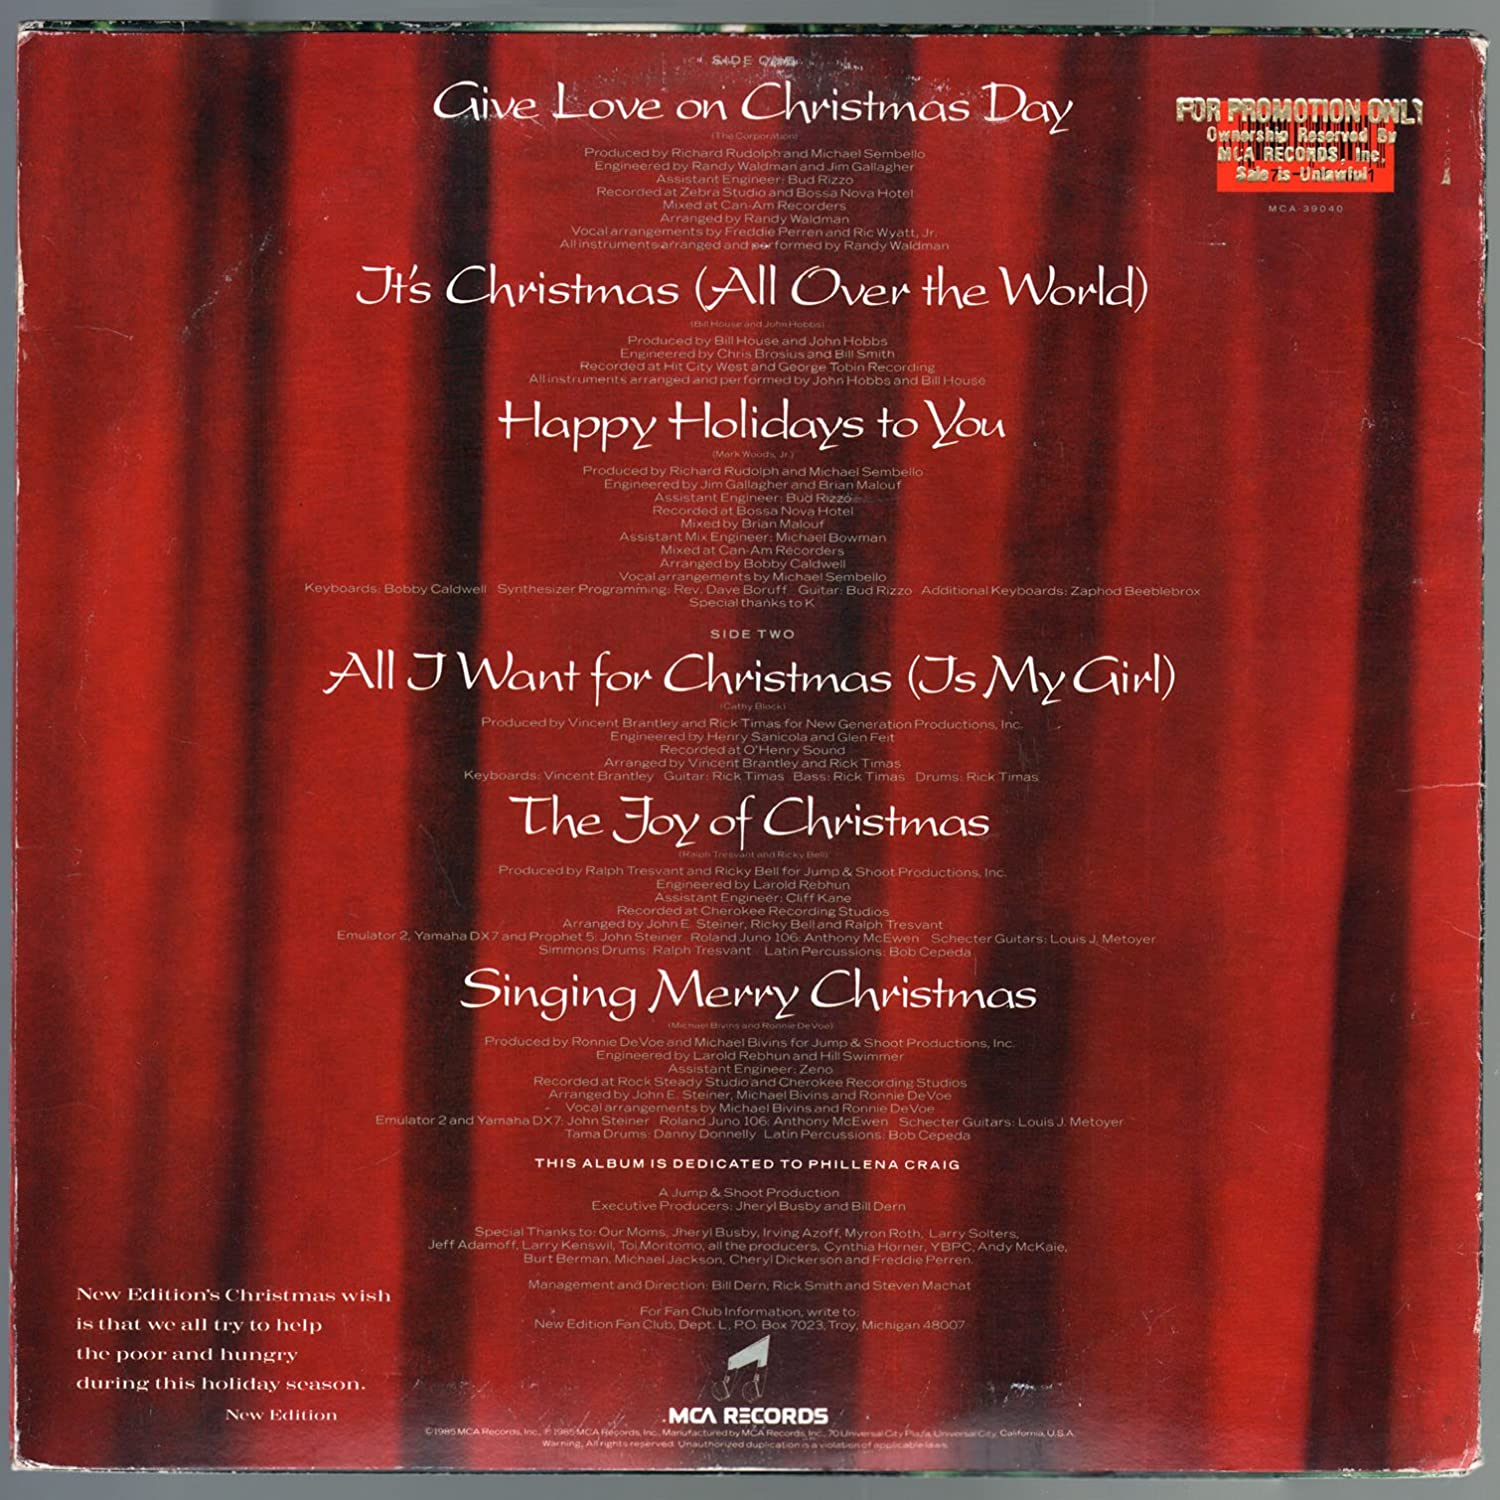 new edition new edition christmas all over the world lp vinyl record 1808 amazoncom music - Christmas All Over The World